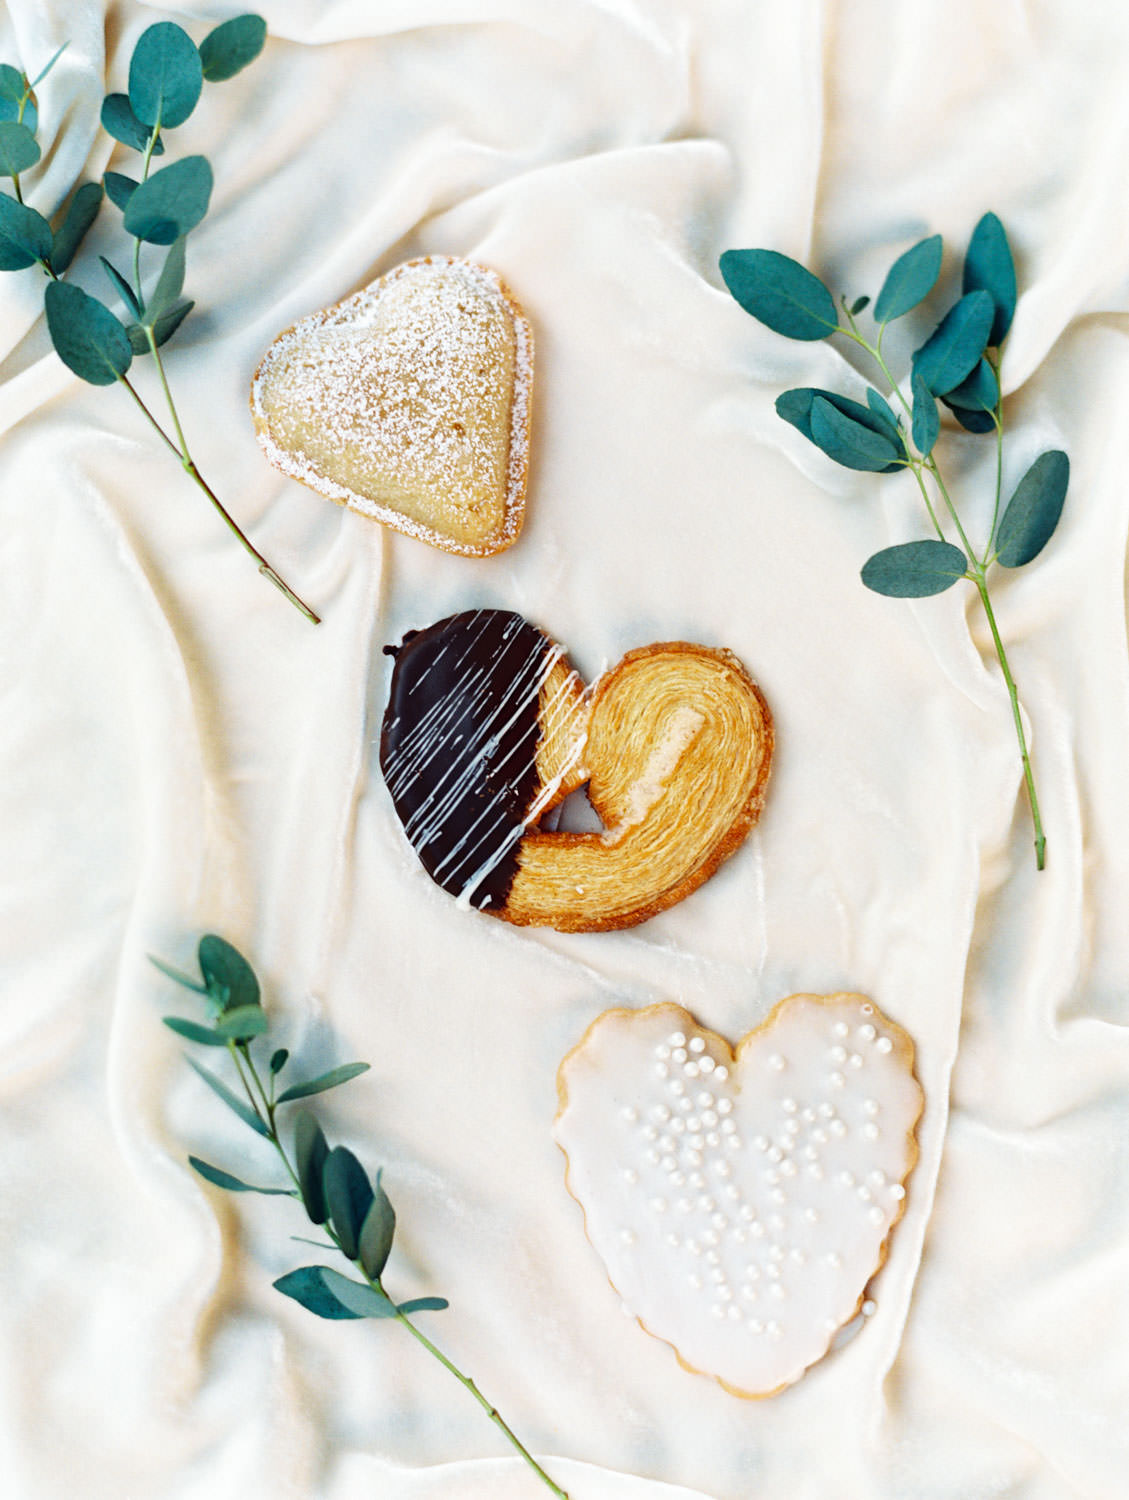 Wedding dessert flatlay with eucalyptus and heart shaped cookies: powdered sugar, chocolate dipped, and icing with pearls. Cavin Elizabeth Photography